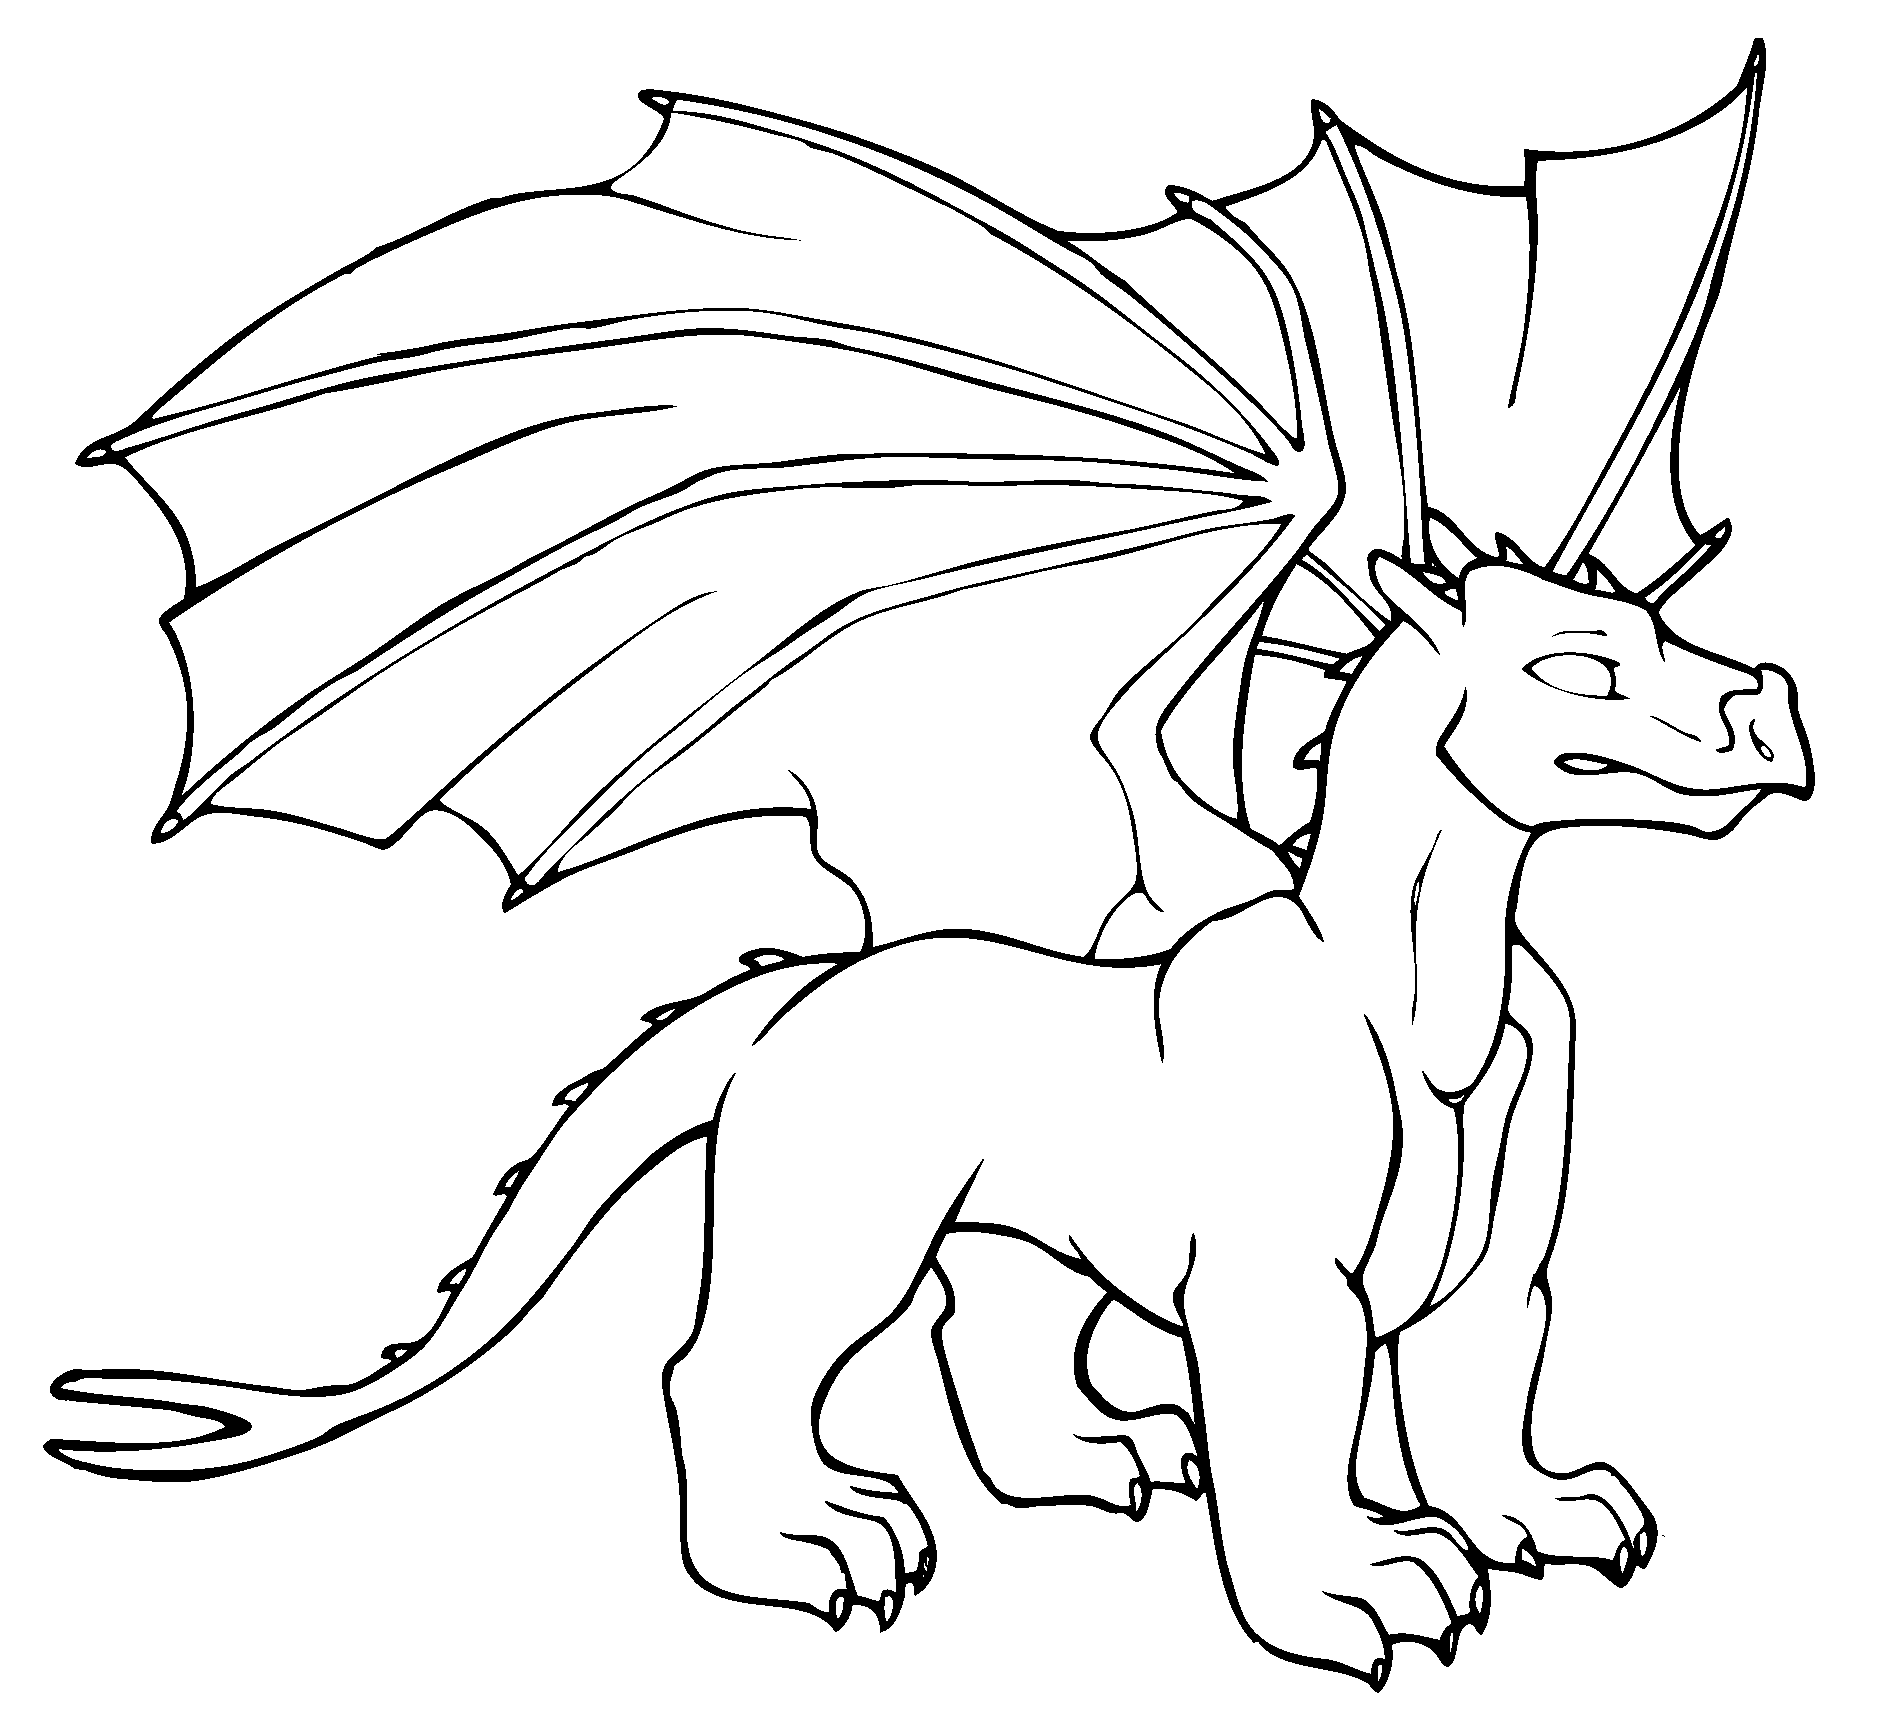 dragon drawing coloring pages how to draw a death dragon step by step dragons draw a pages coloring dragon drawing